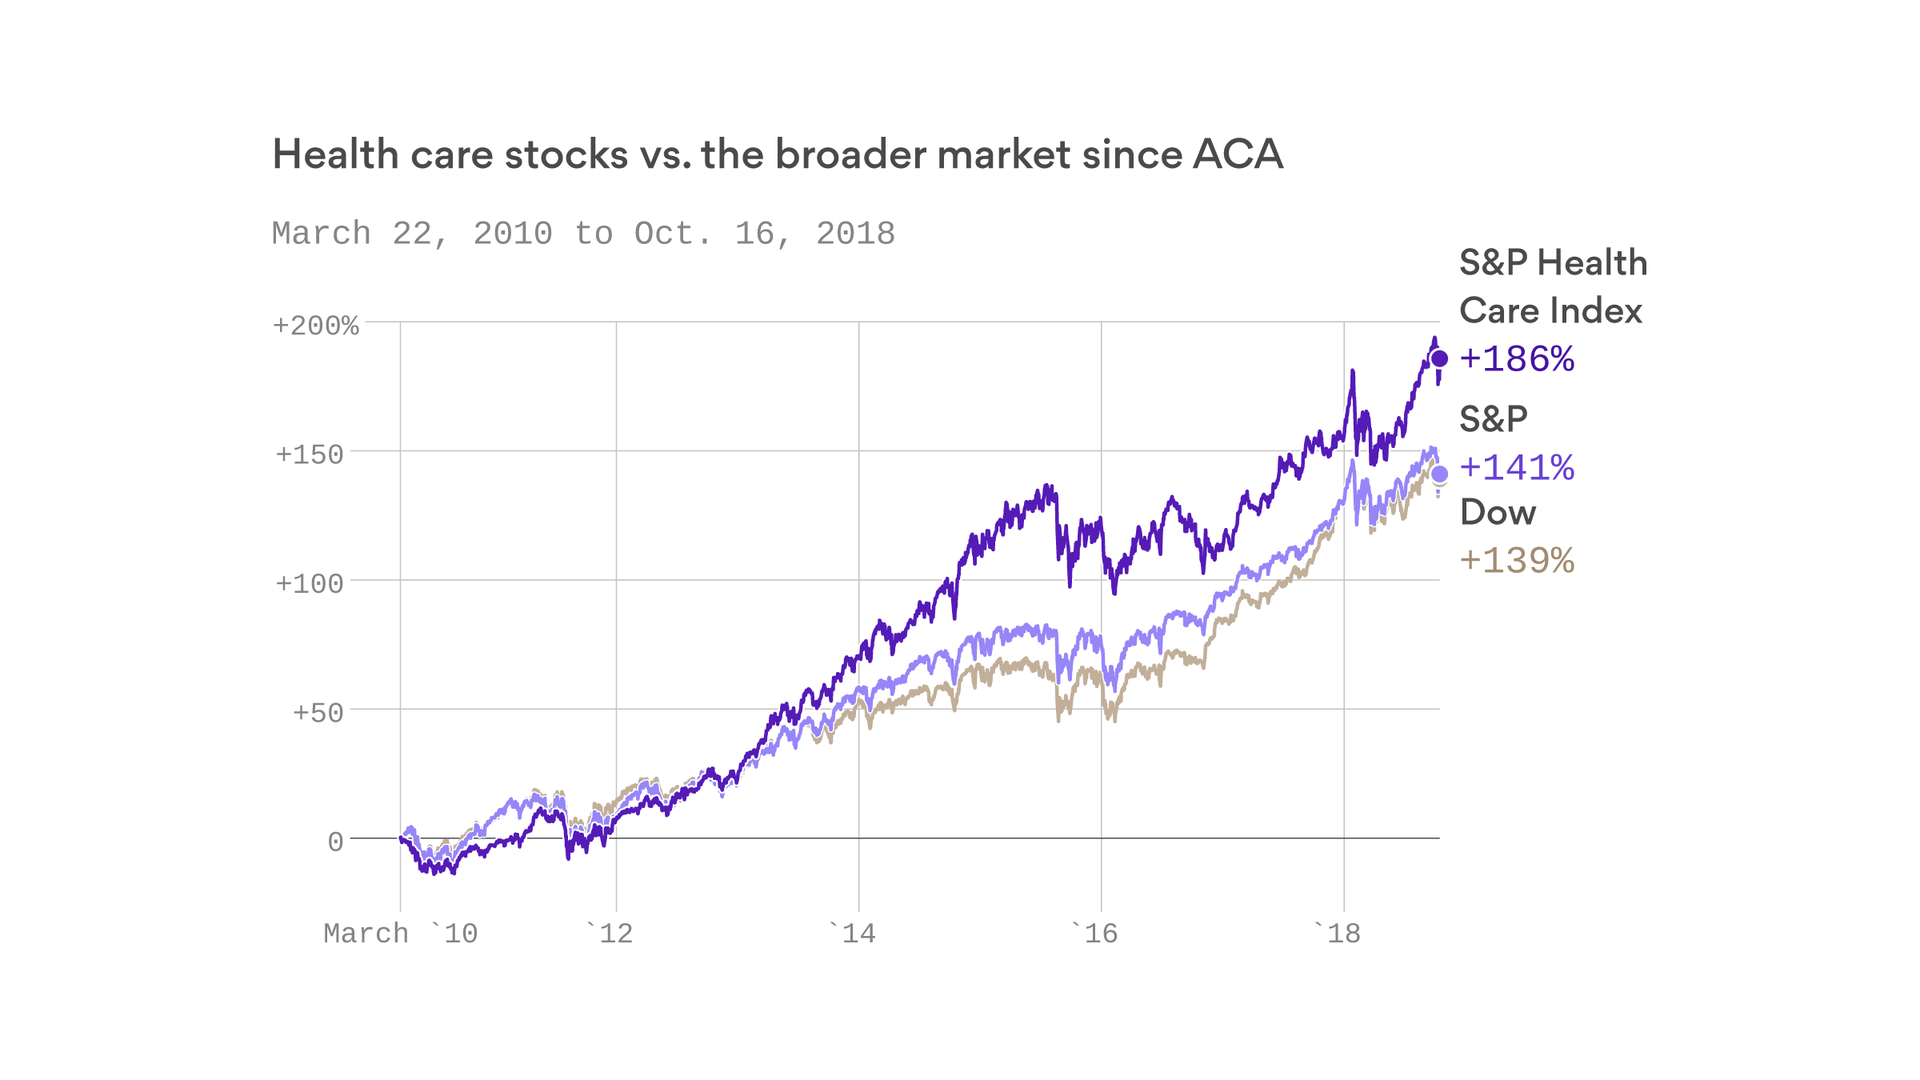 Earnings of health care companies have soared under the ACA